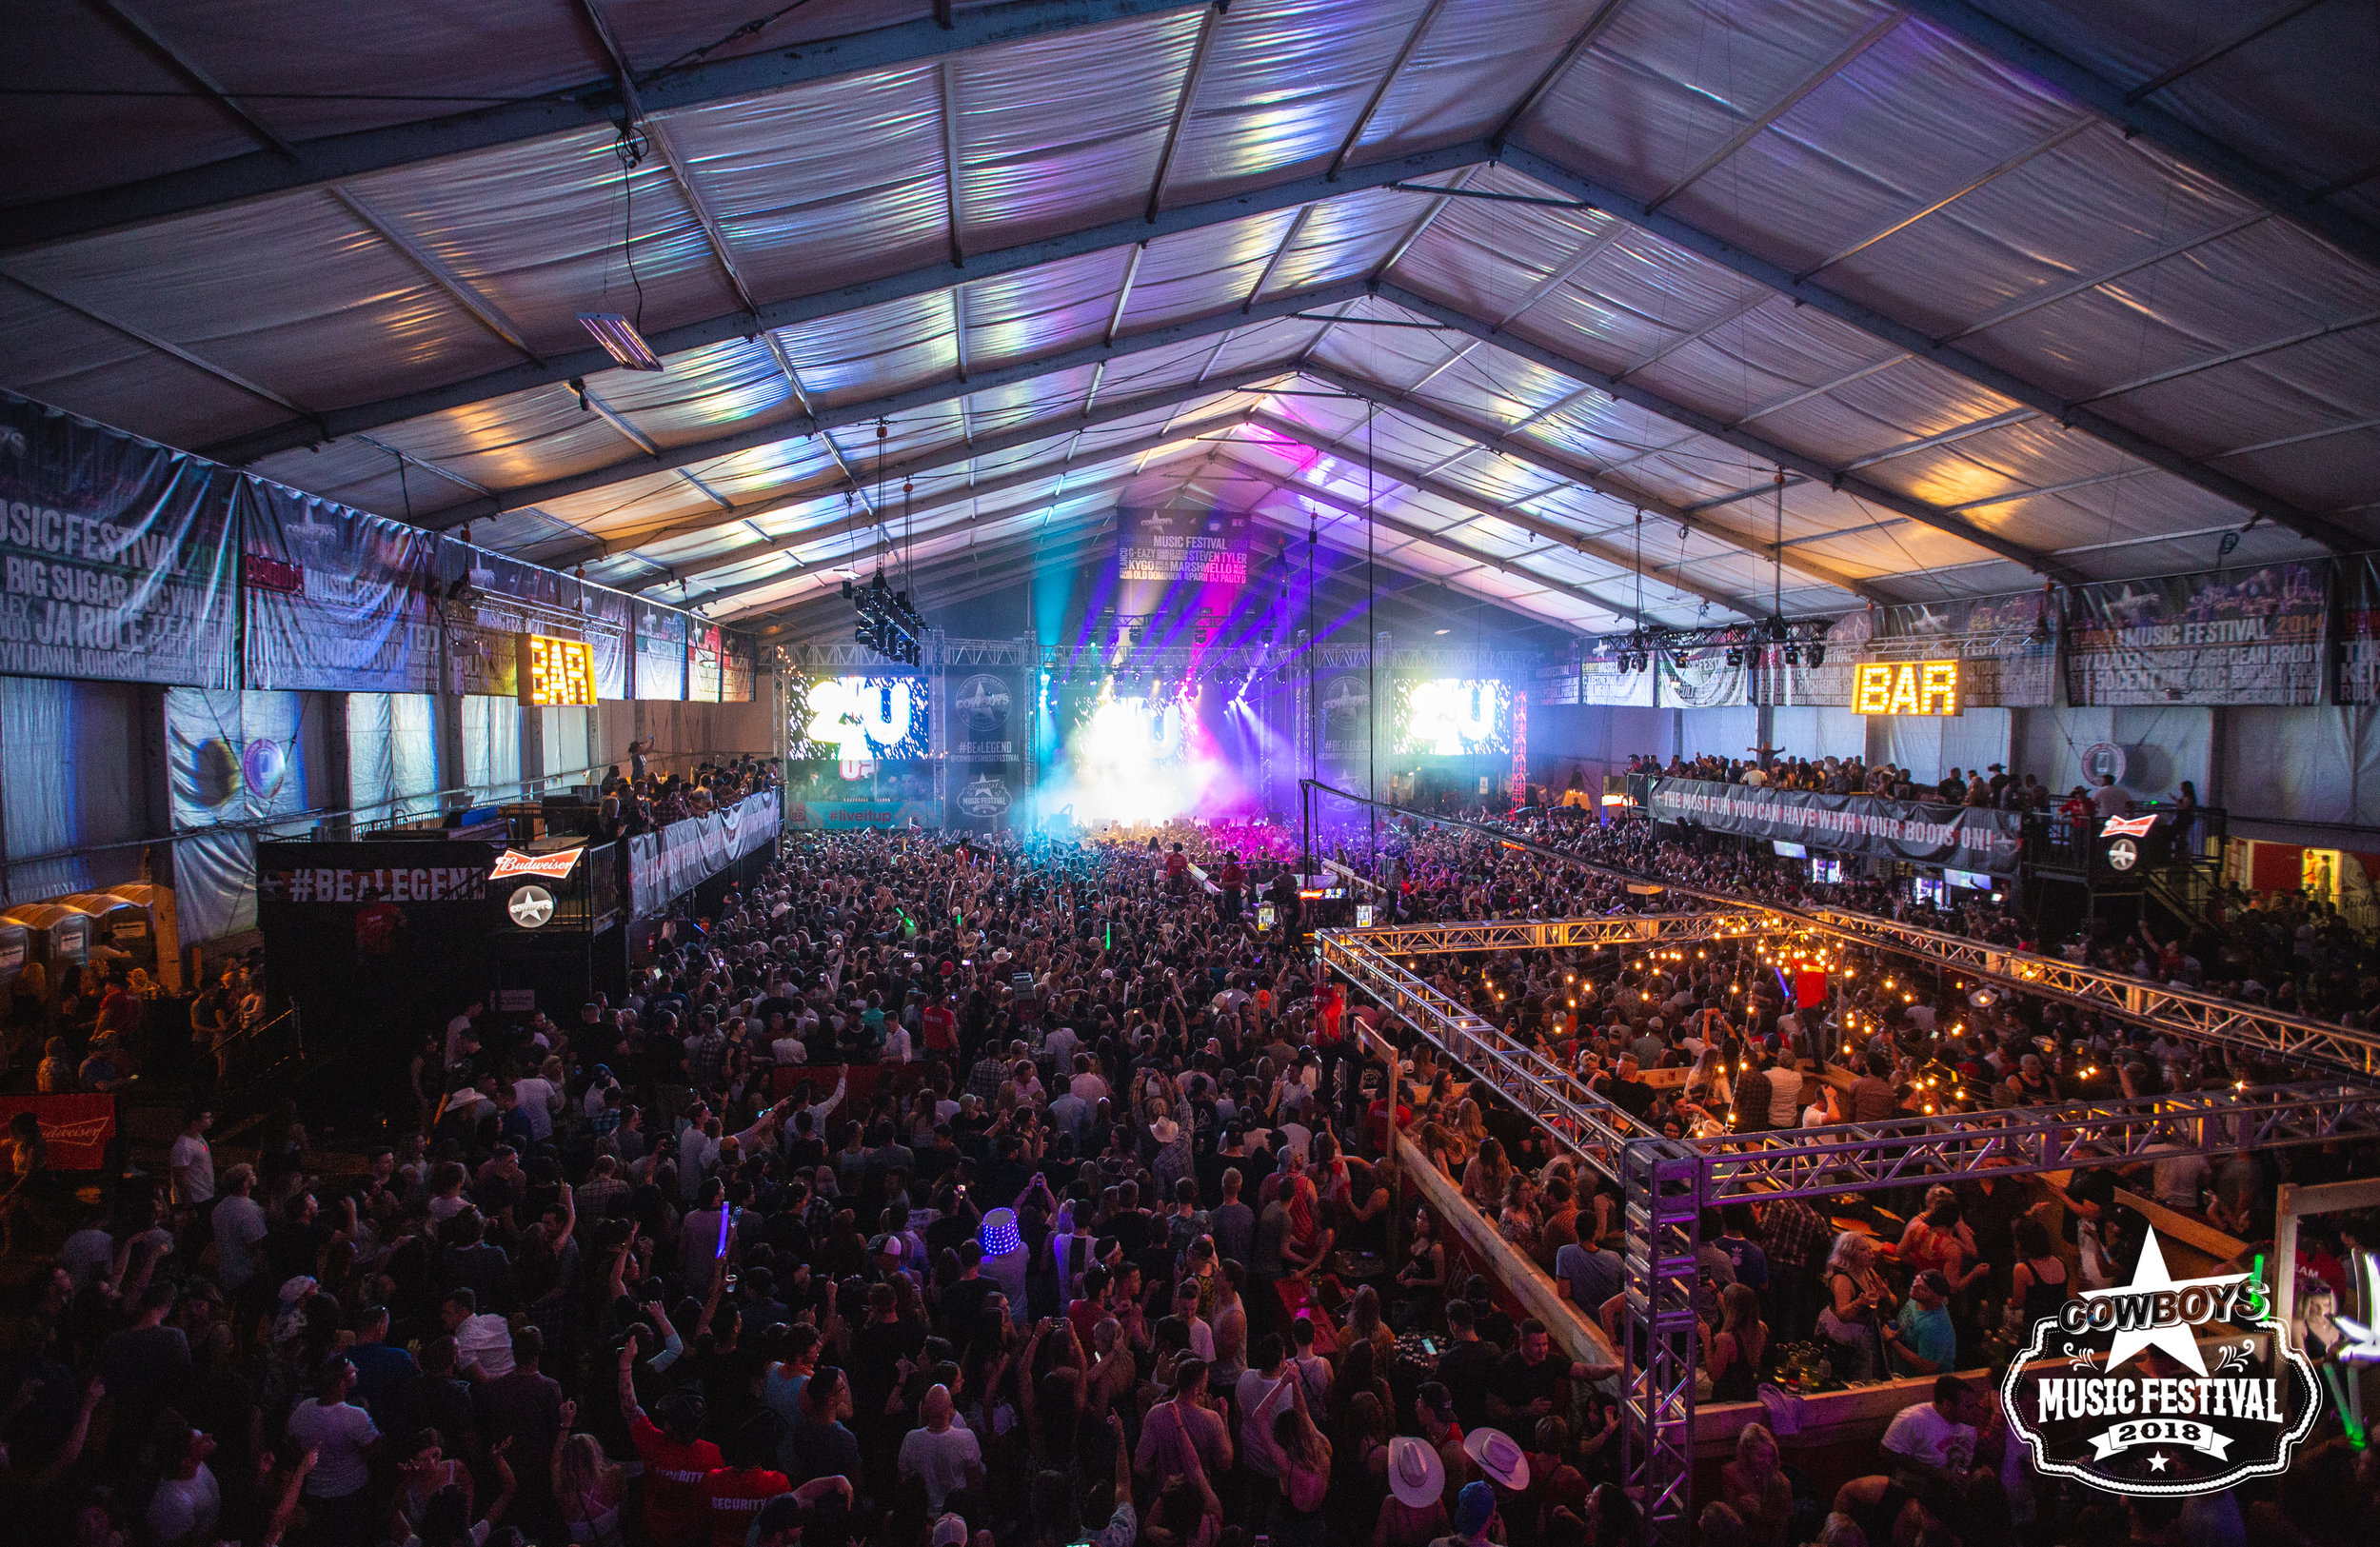 Cowboys Music Festival: Tent Venue